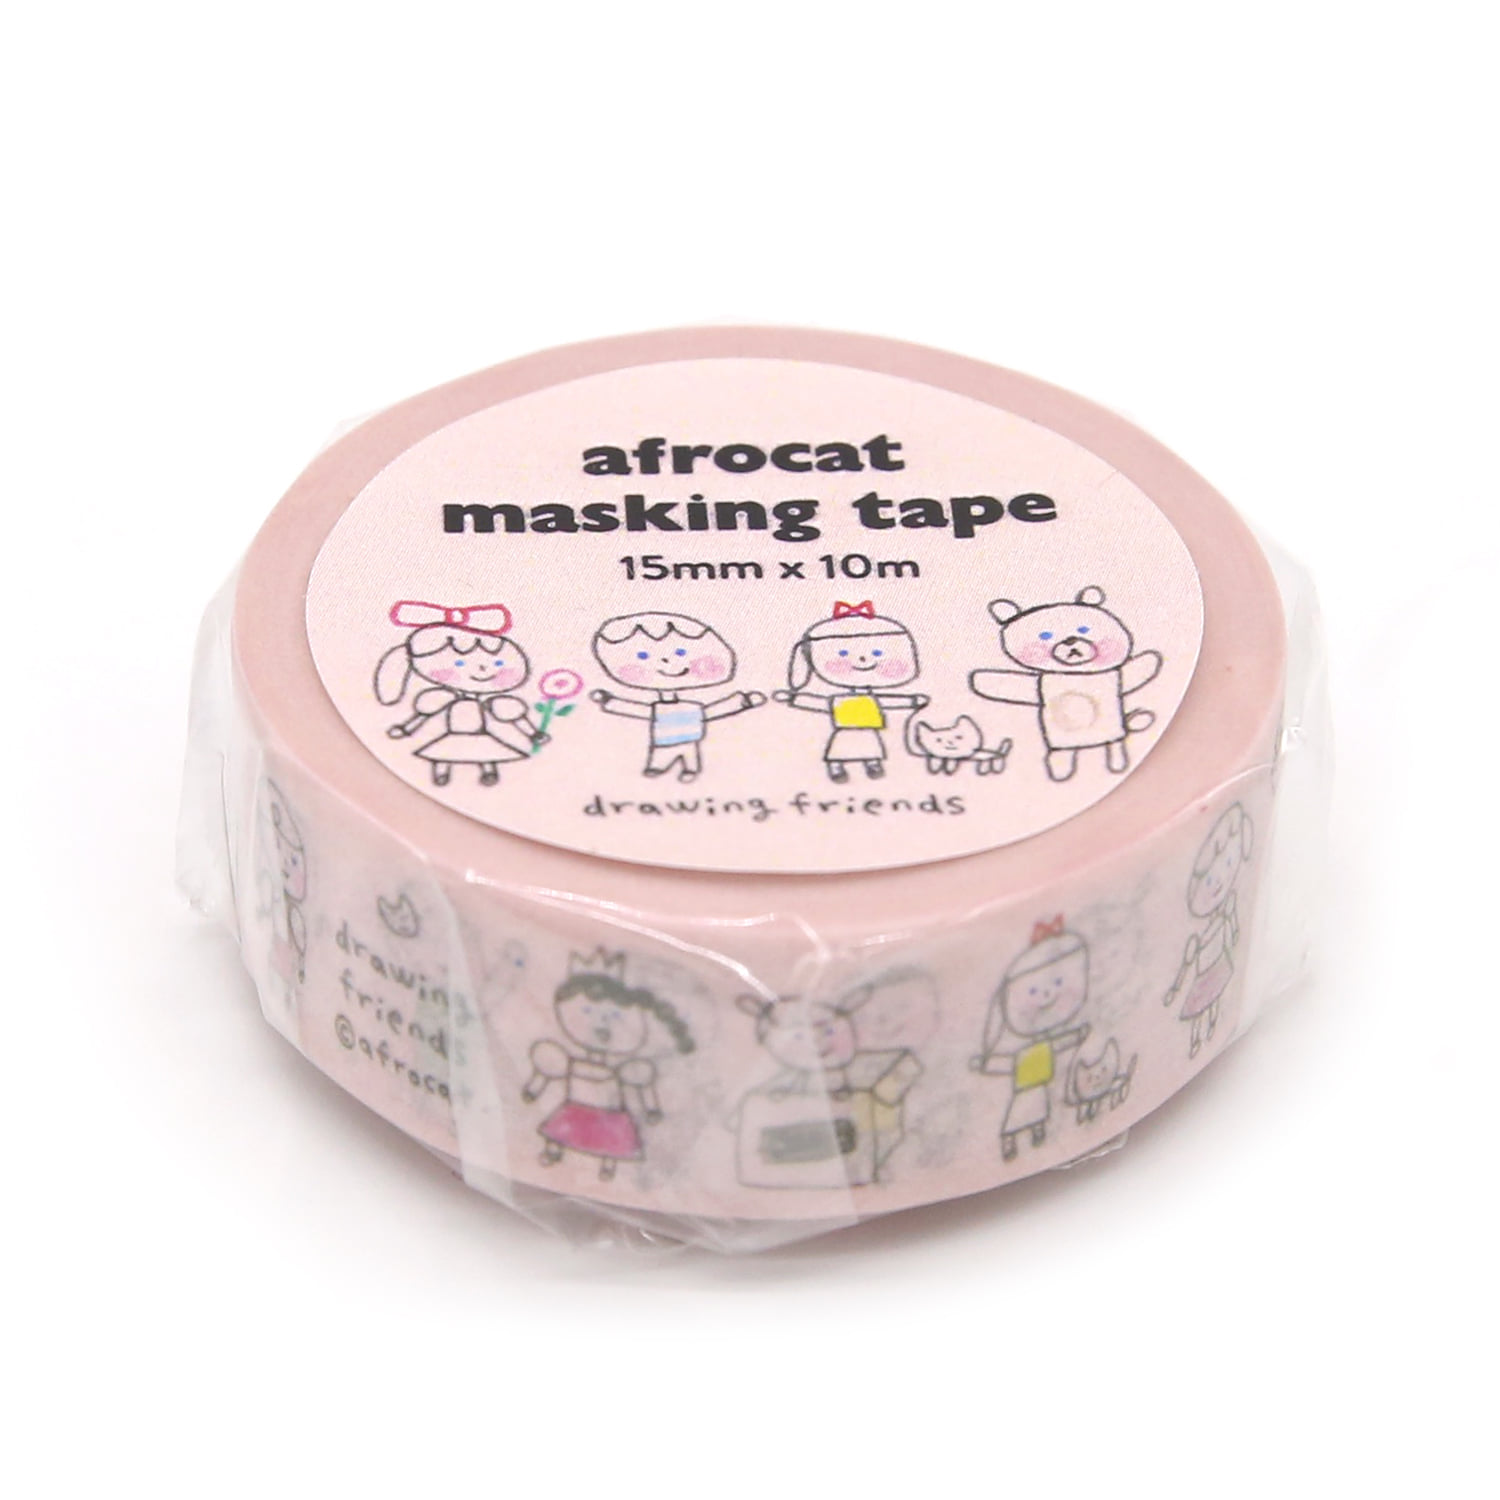 [afrocat masking tape] 9. Drawing friends_15mm